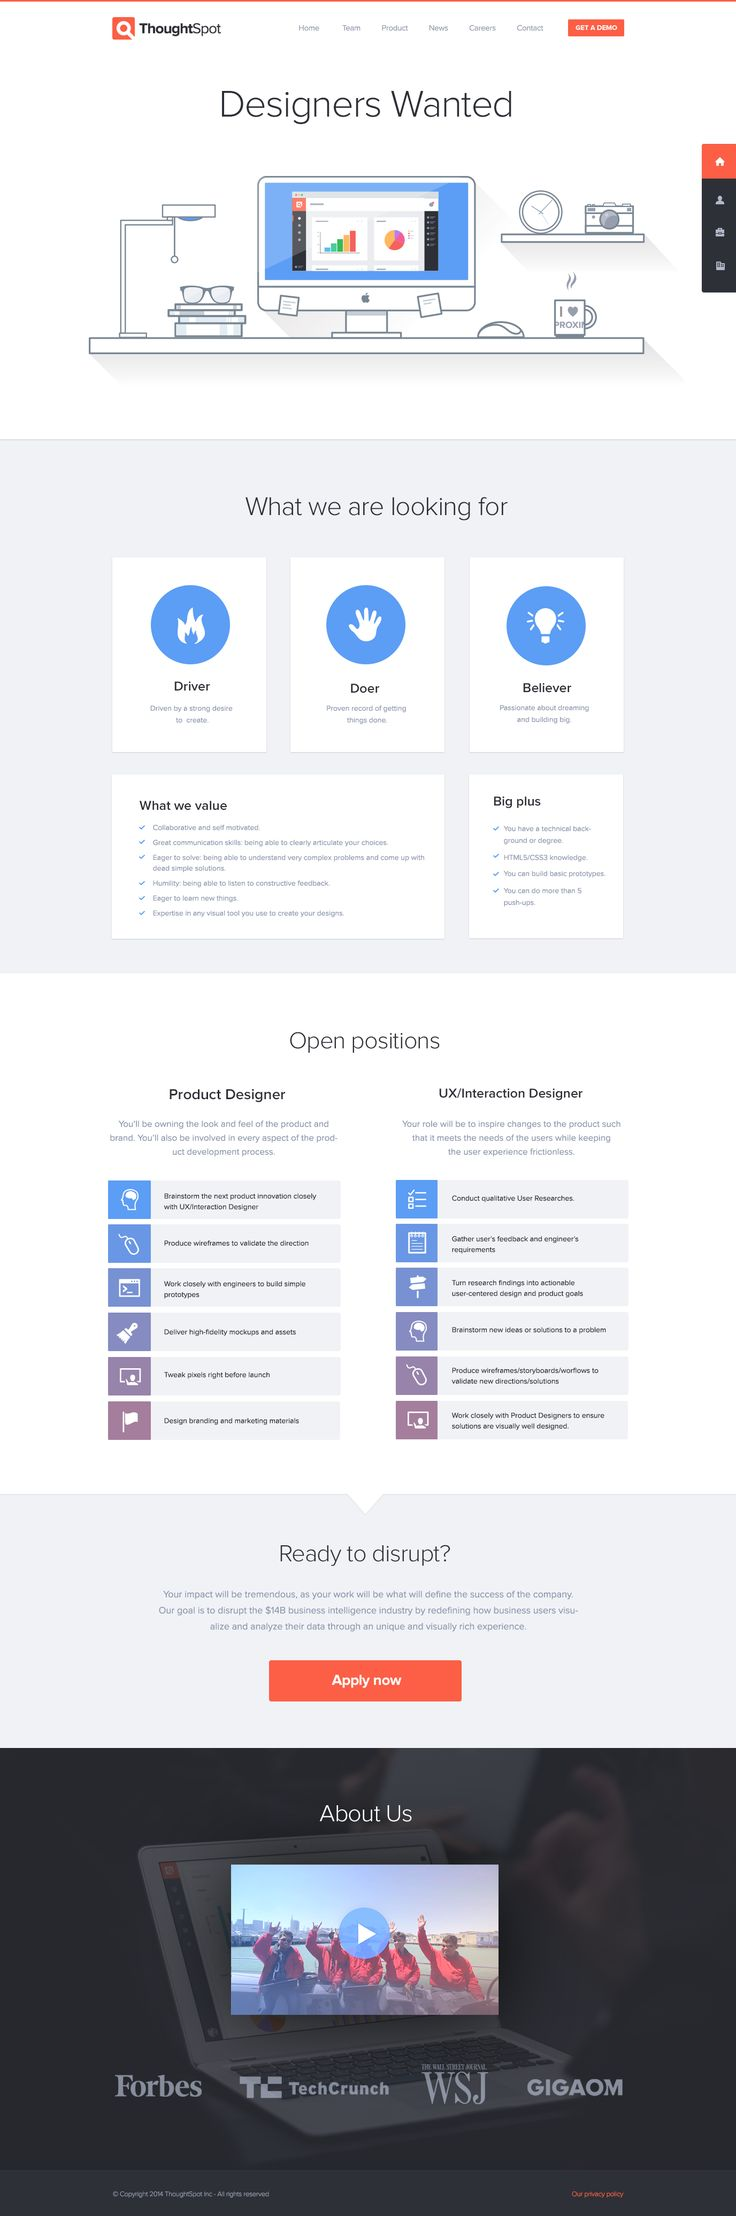 Designers Wanted by Jonathan Moreira